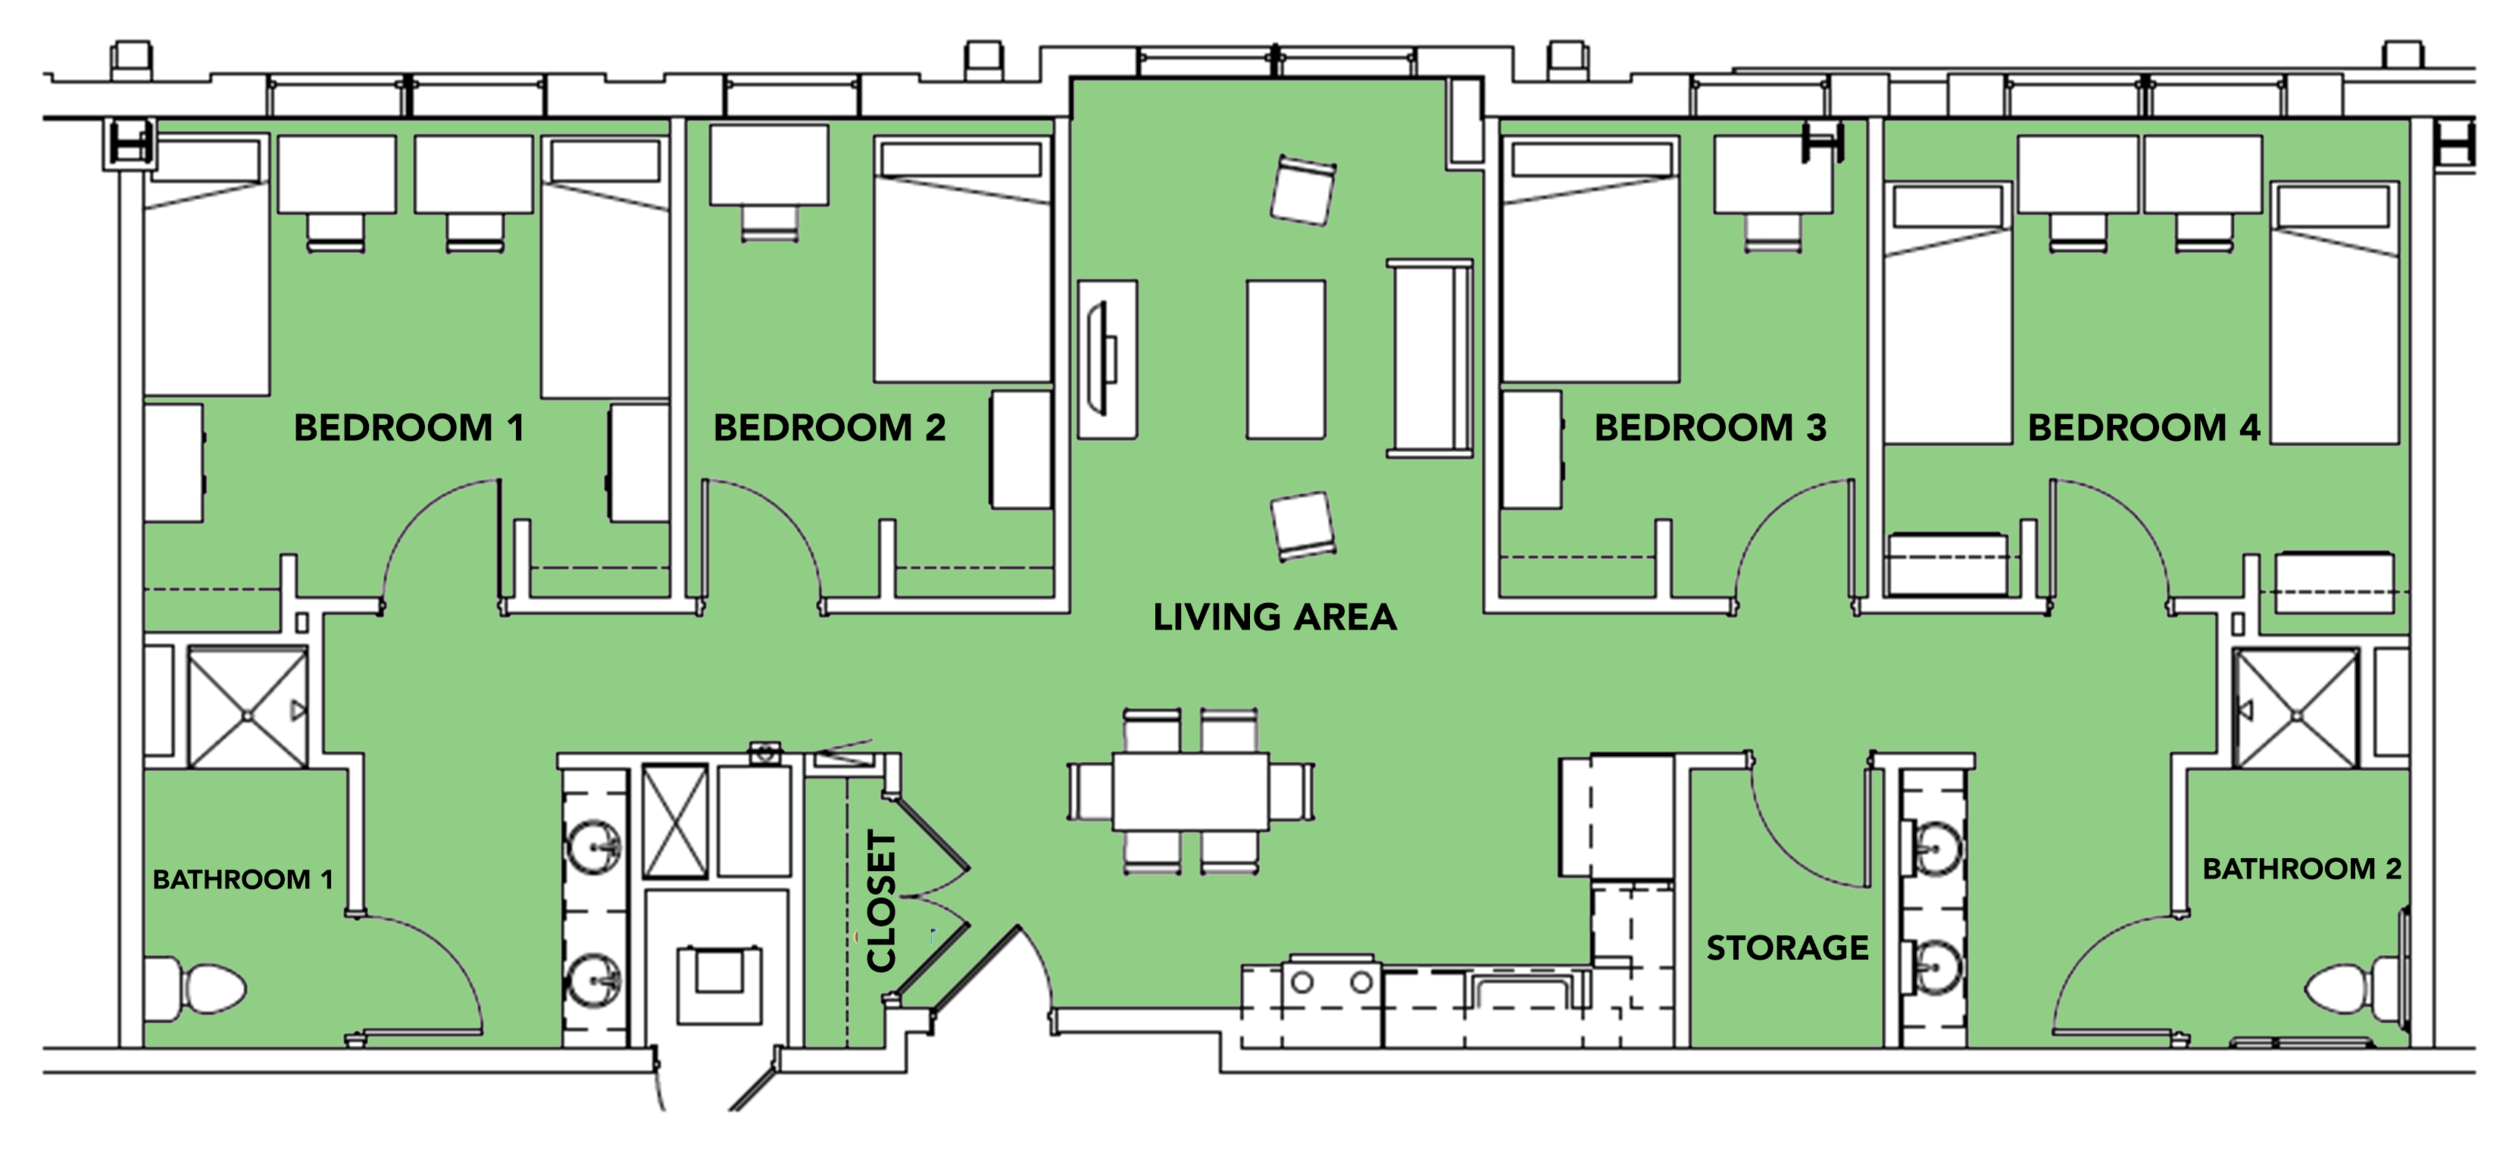 6 Students -  4 bed, 2 bath